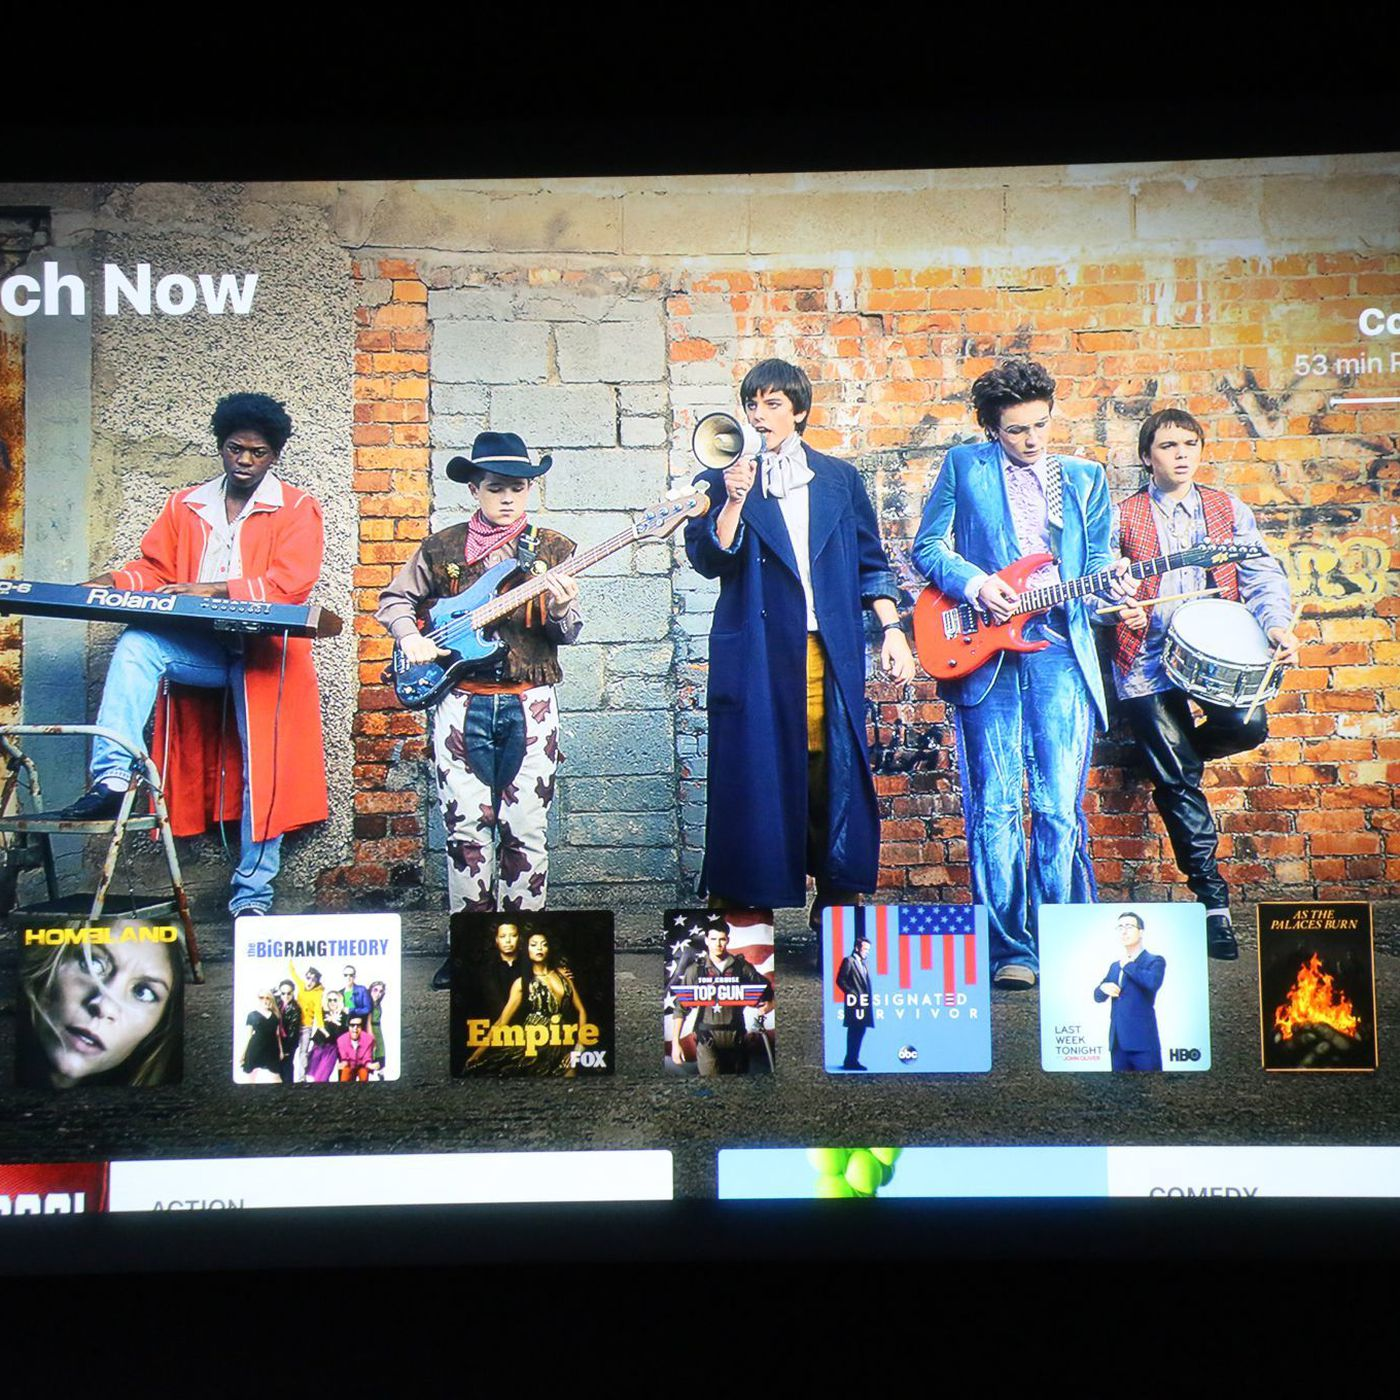 Apple announces a TV app to put all your content in one place - The